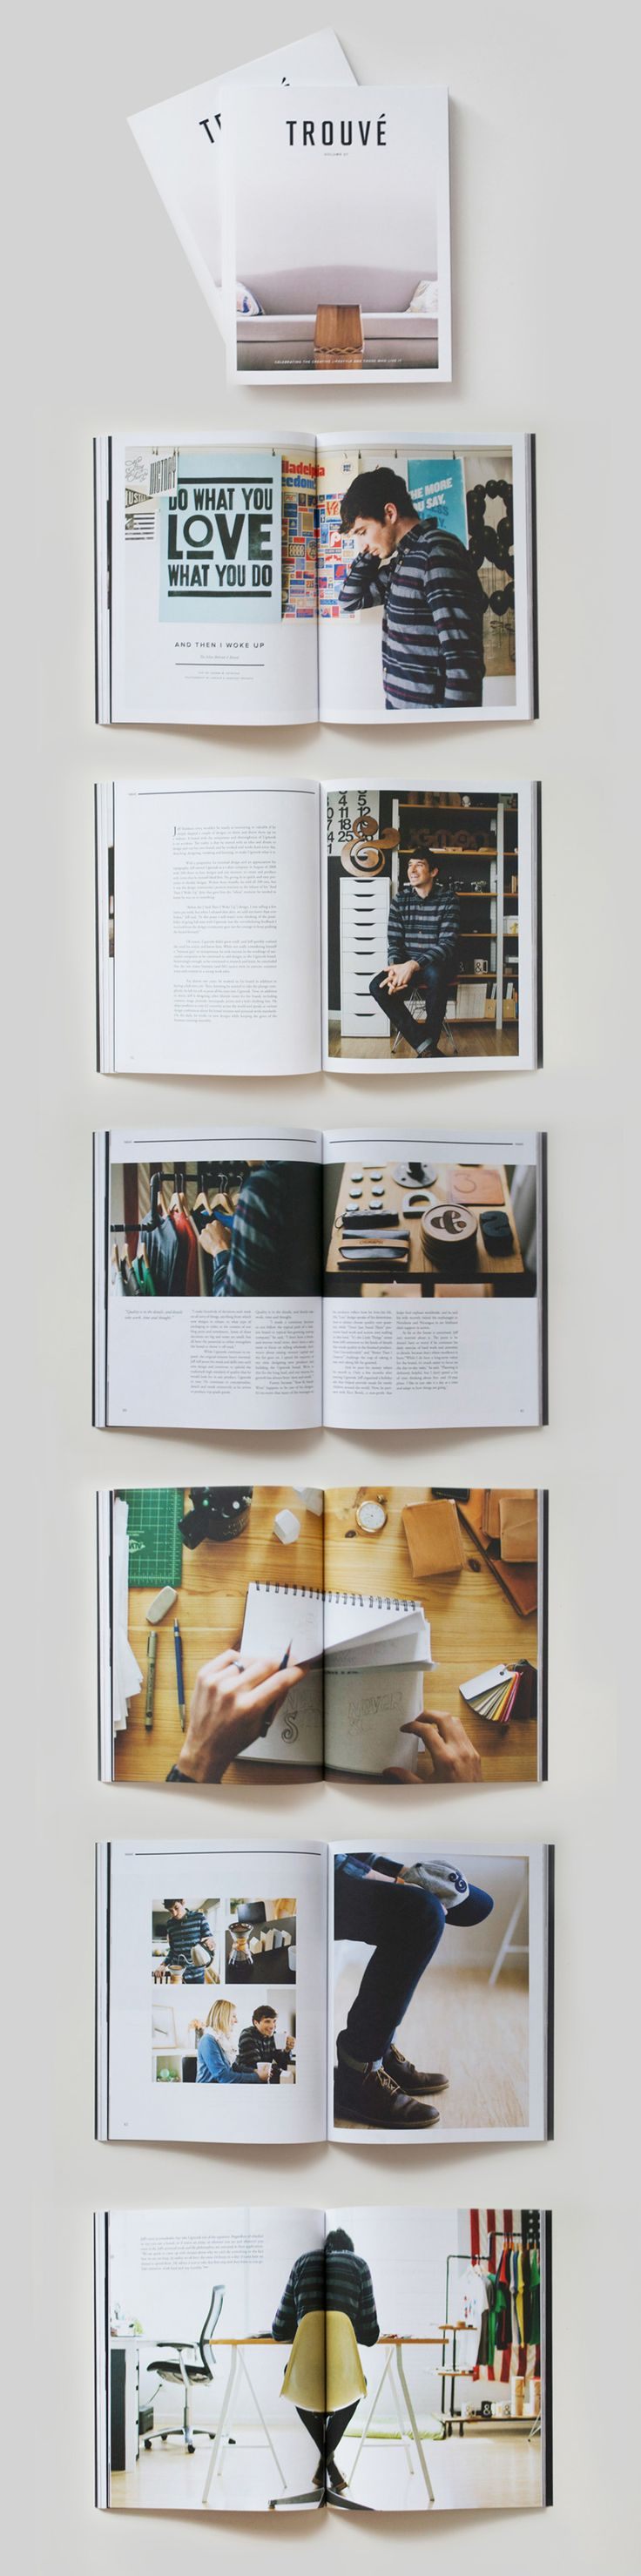 best 10+ magazine spreads ideas on pinterest | magazine layouts